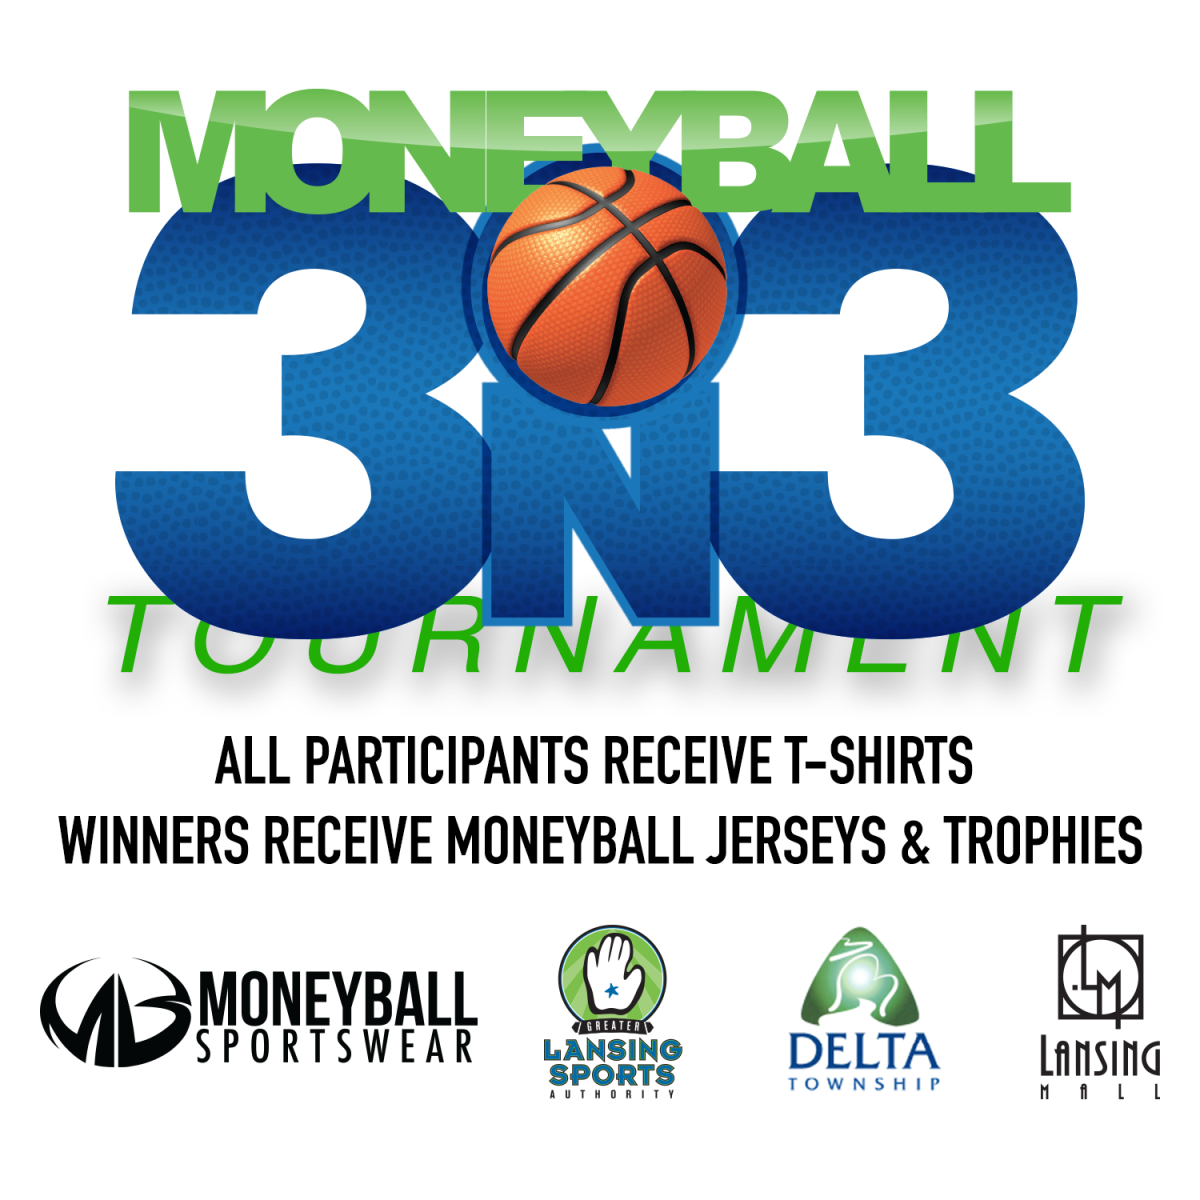 moneyball 3on3 flyer back